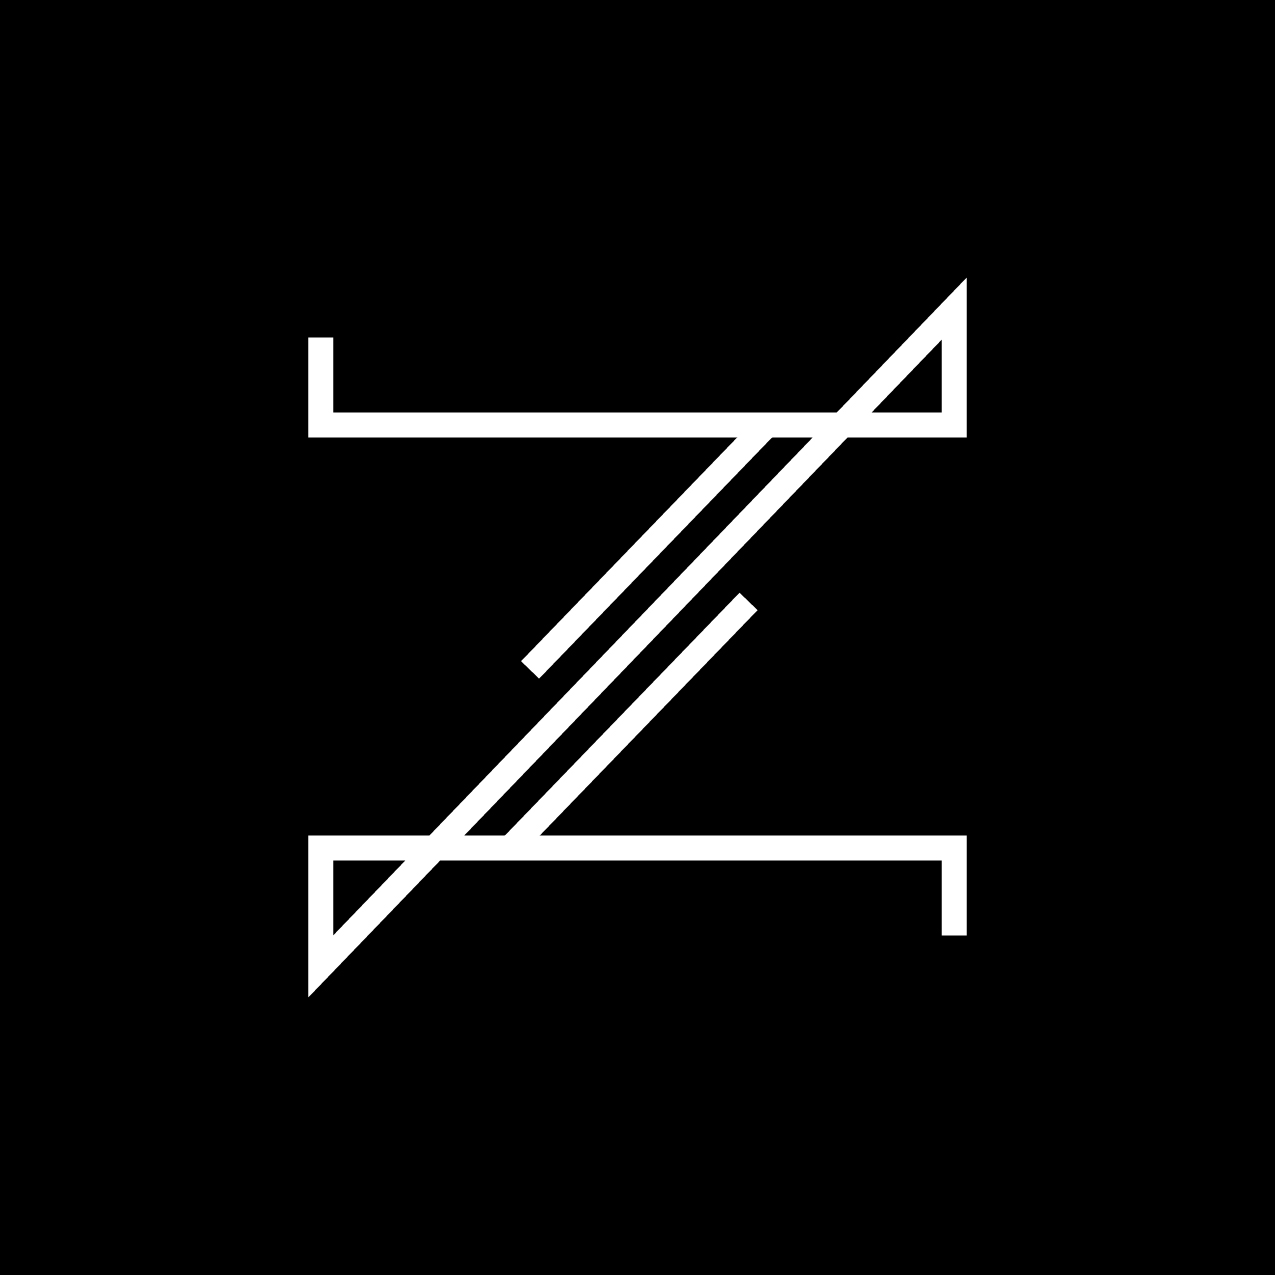 Letter Z8 Design by Furia